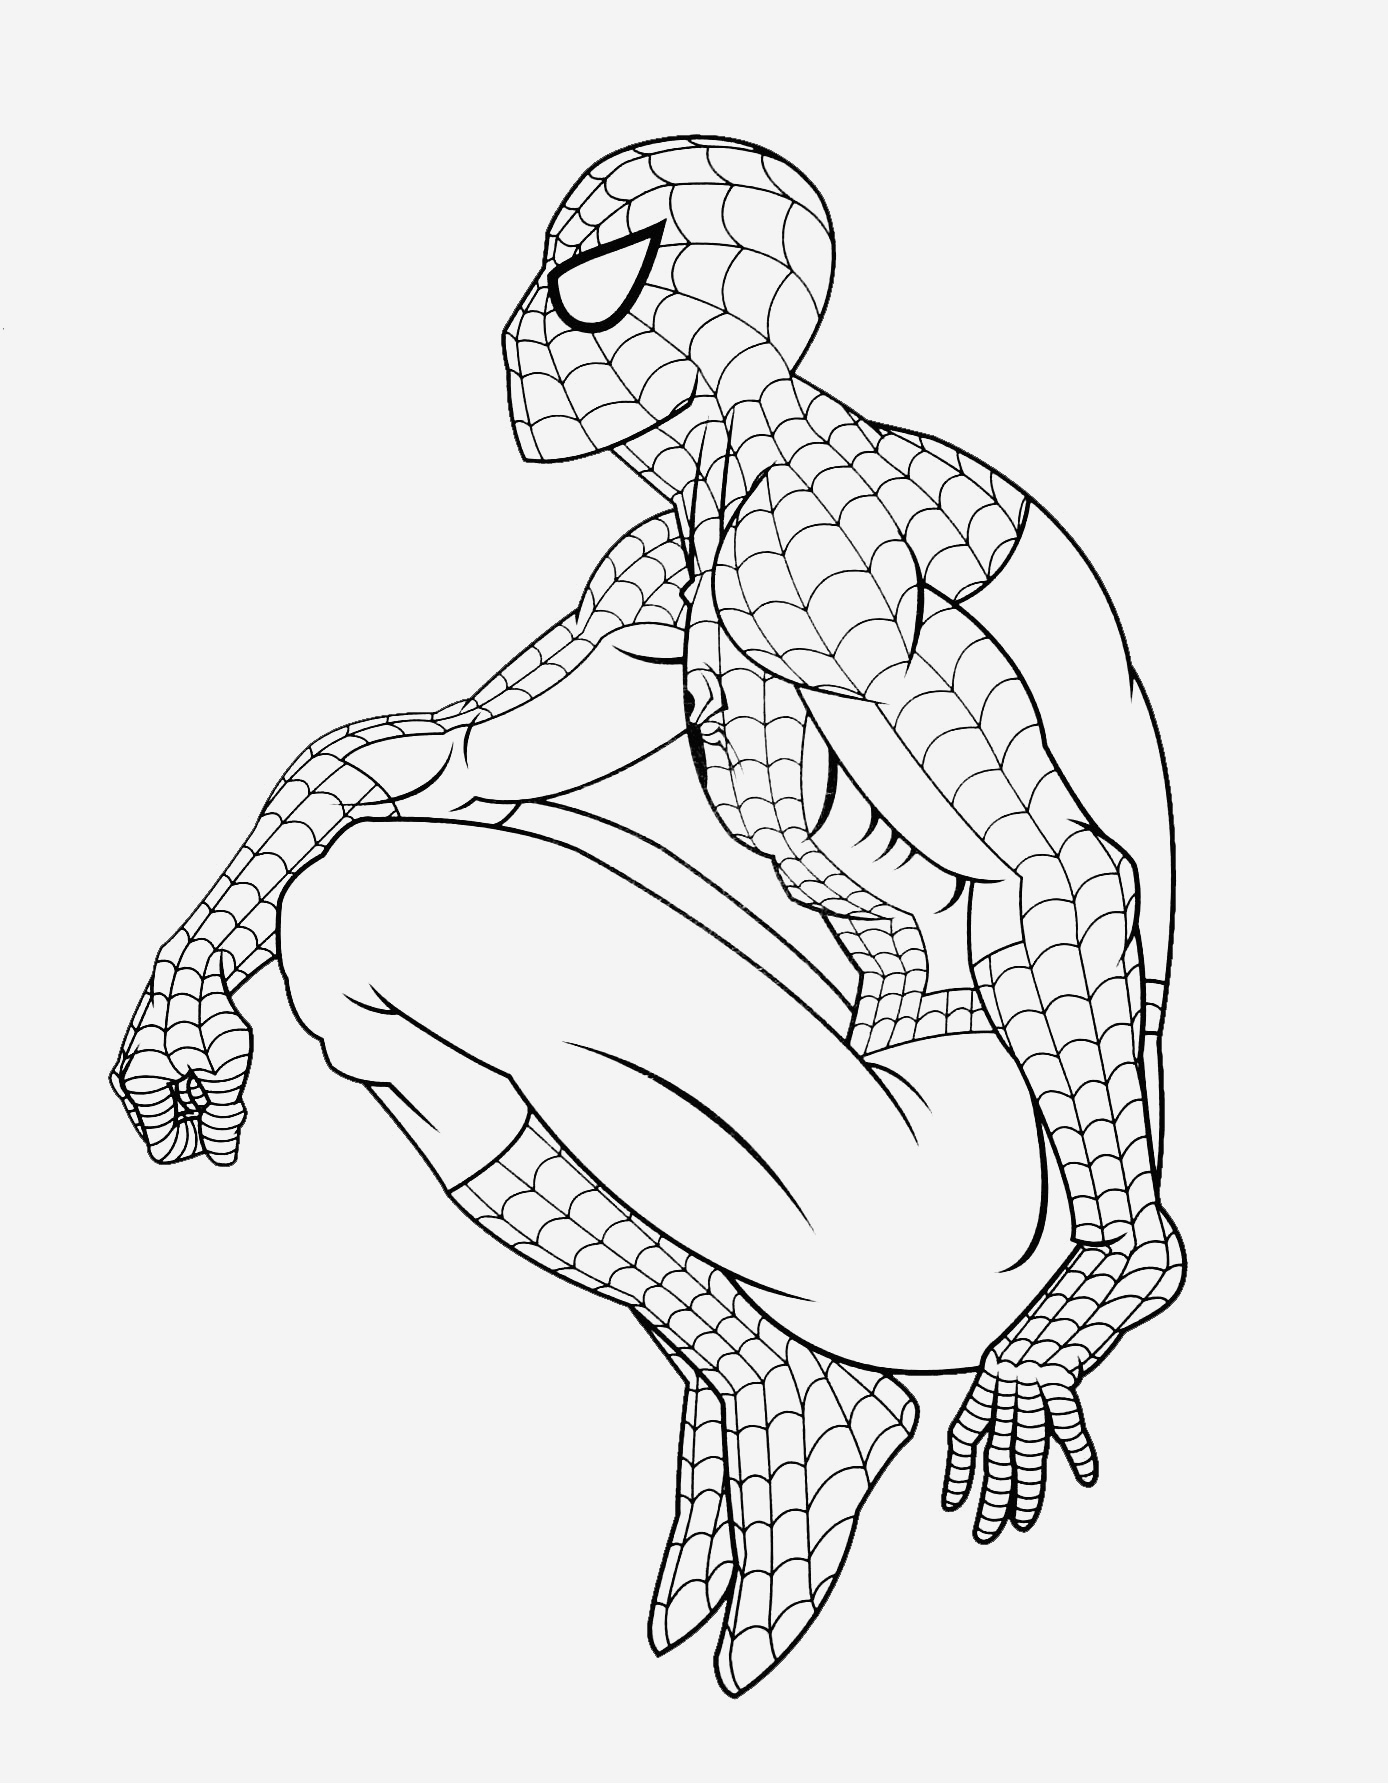 Coloriage De Spiderman Unique Coloriage De Spiderman   Telecharger Gratuitement Of Coloriage De Spiderman